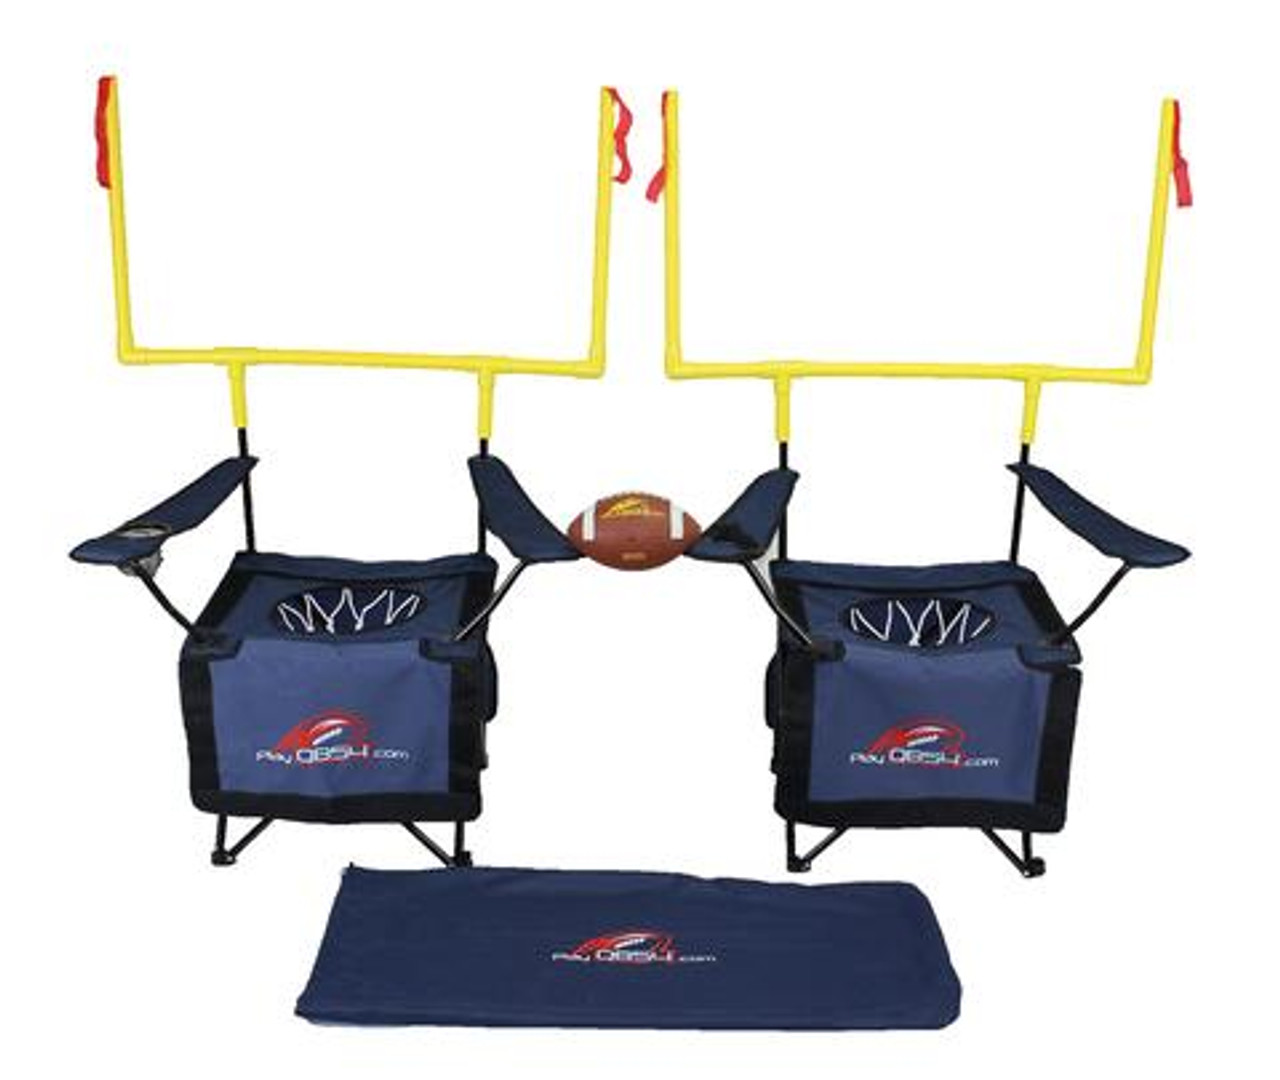 QB54 Football Ultimate Football Game and Chair